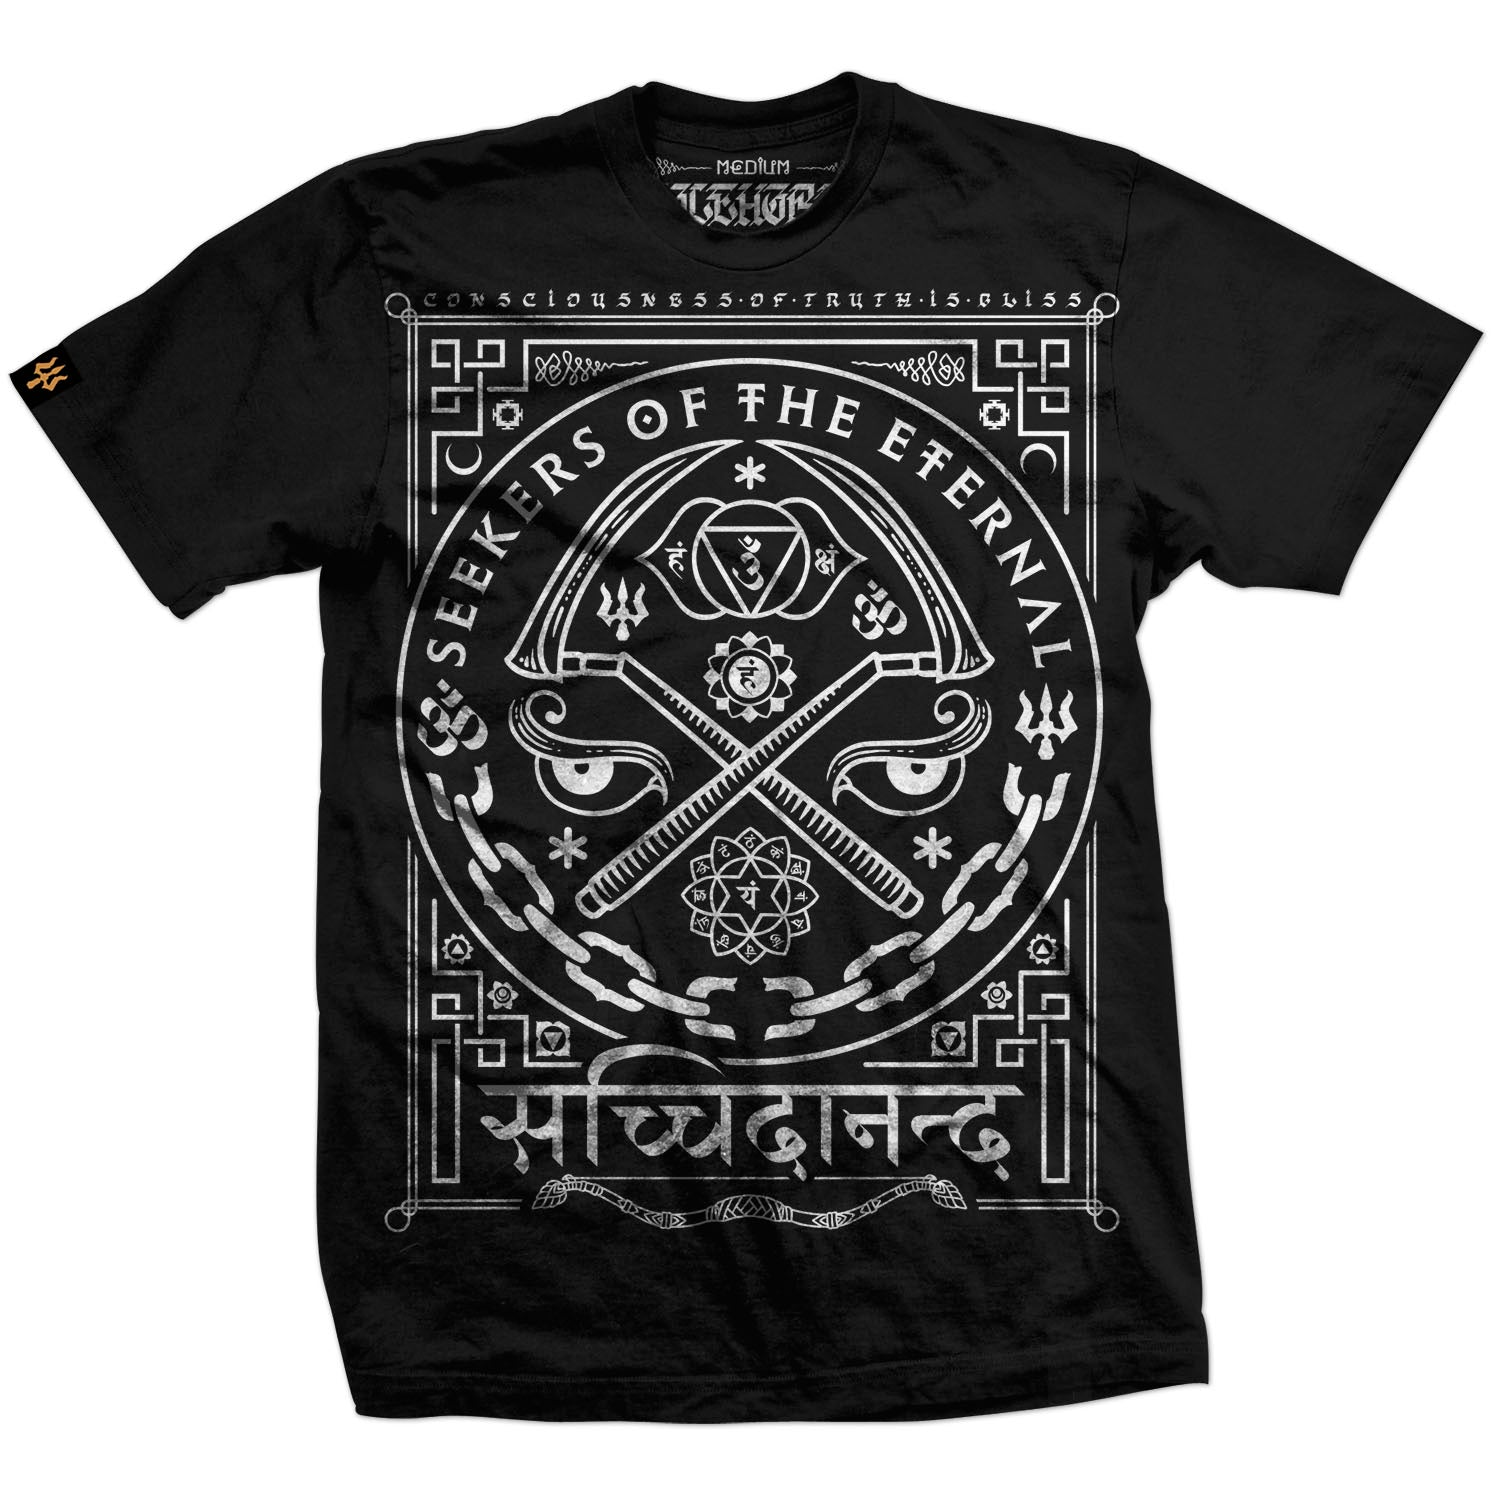 T-shirt: 'Seekers' Black